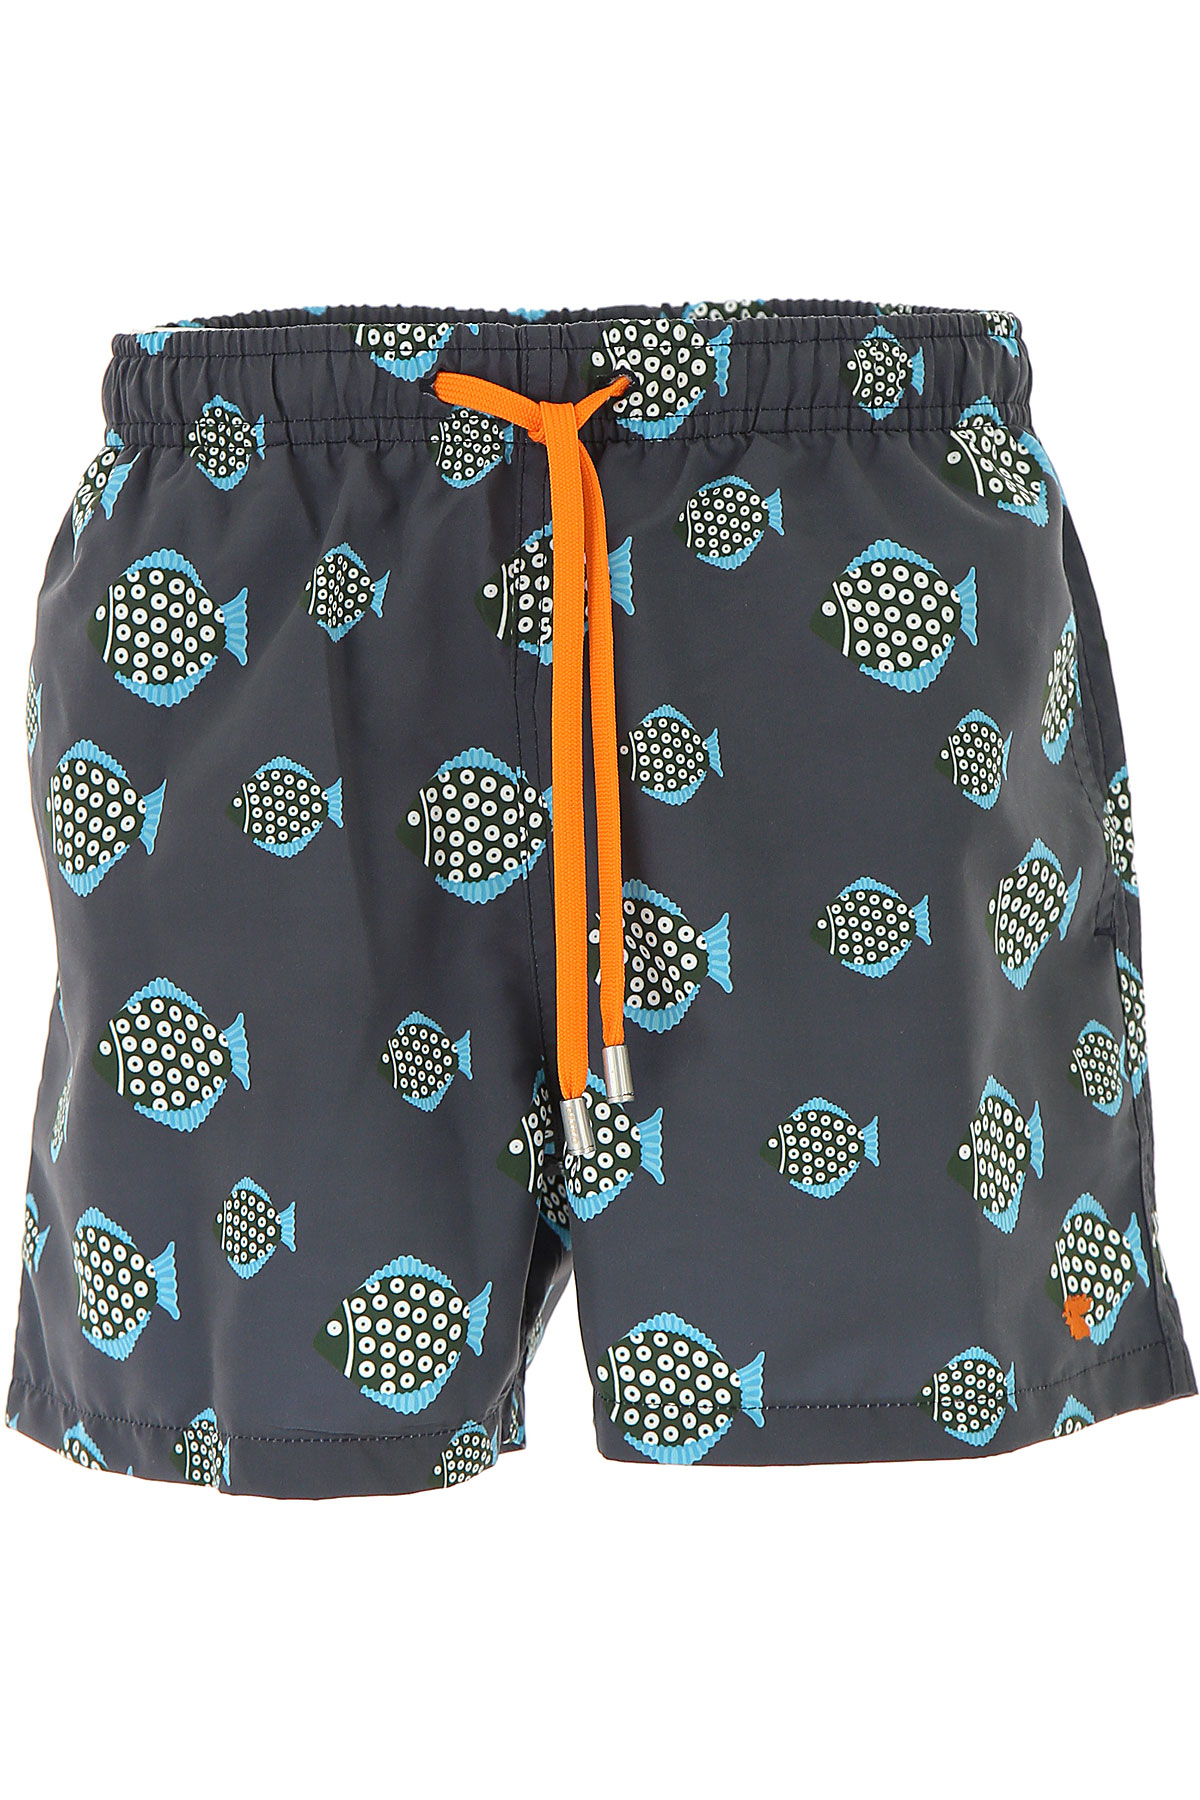 Image of Gallo Swimwear On Sale, Blue, polyester, 2017, 5 (9-10 Years) 6 (11-12 Years) 7 (13-14 Years)